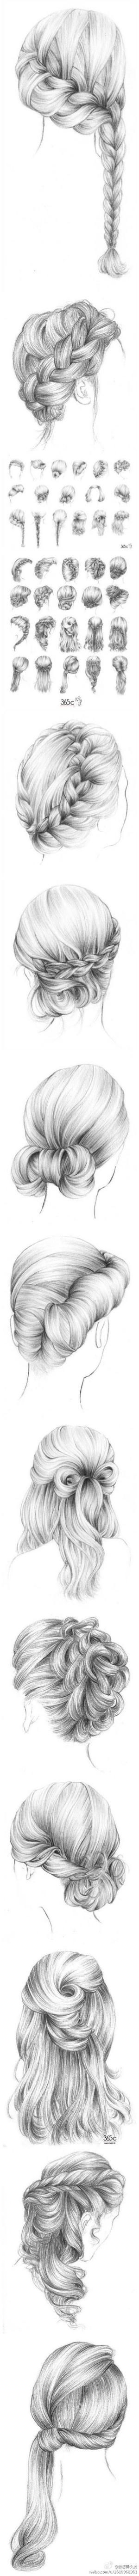 by Lori Novo   Hair - Tips & How To's  